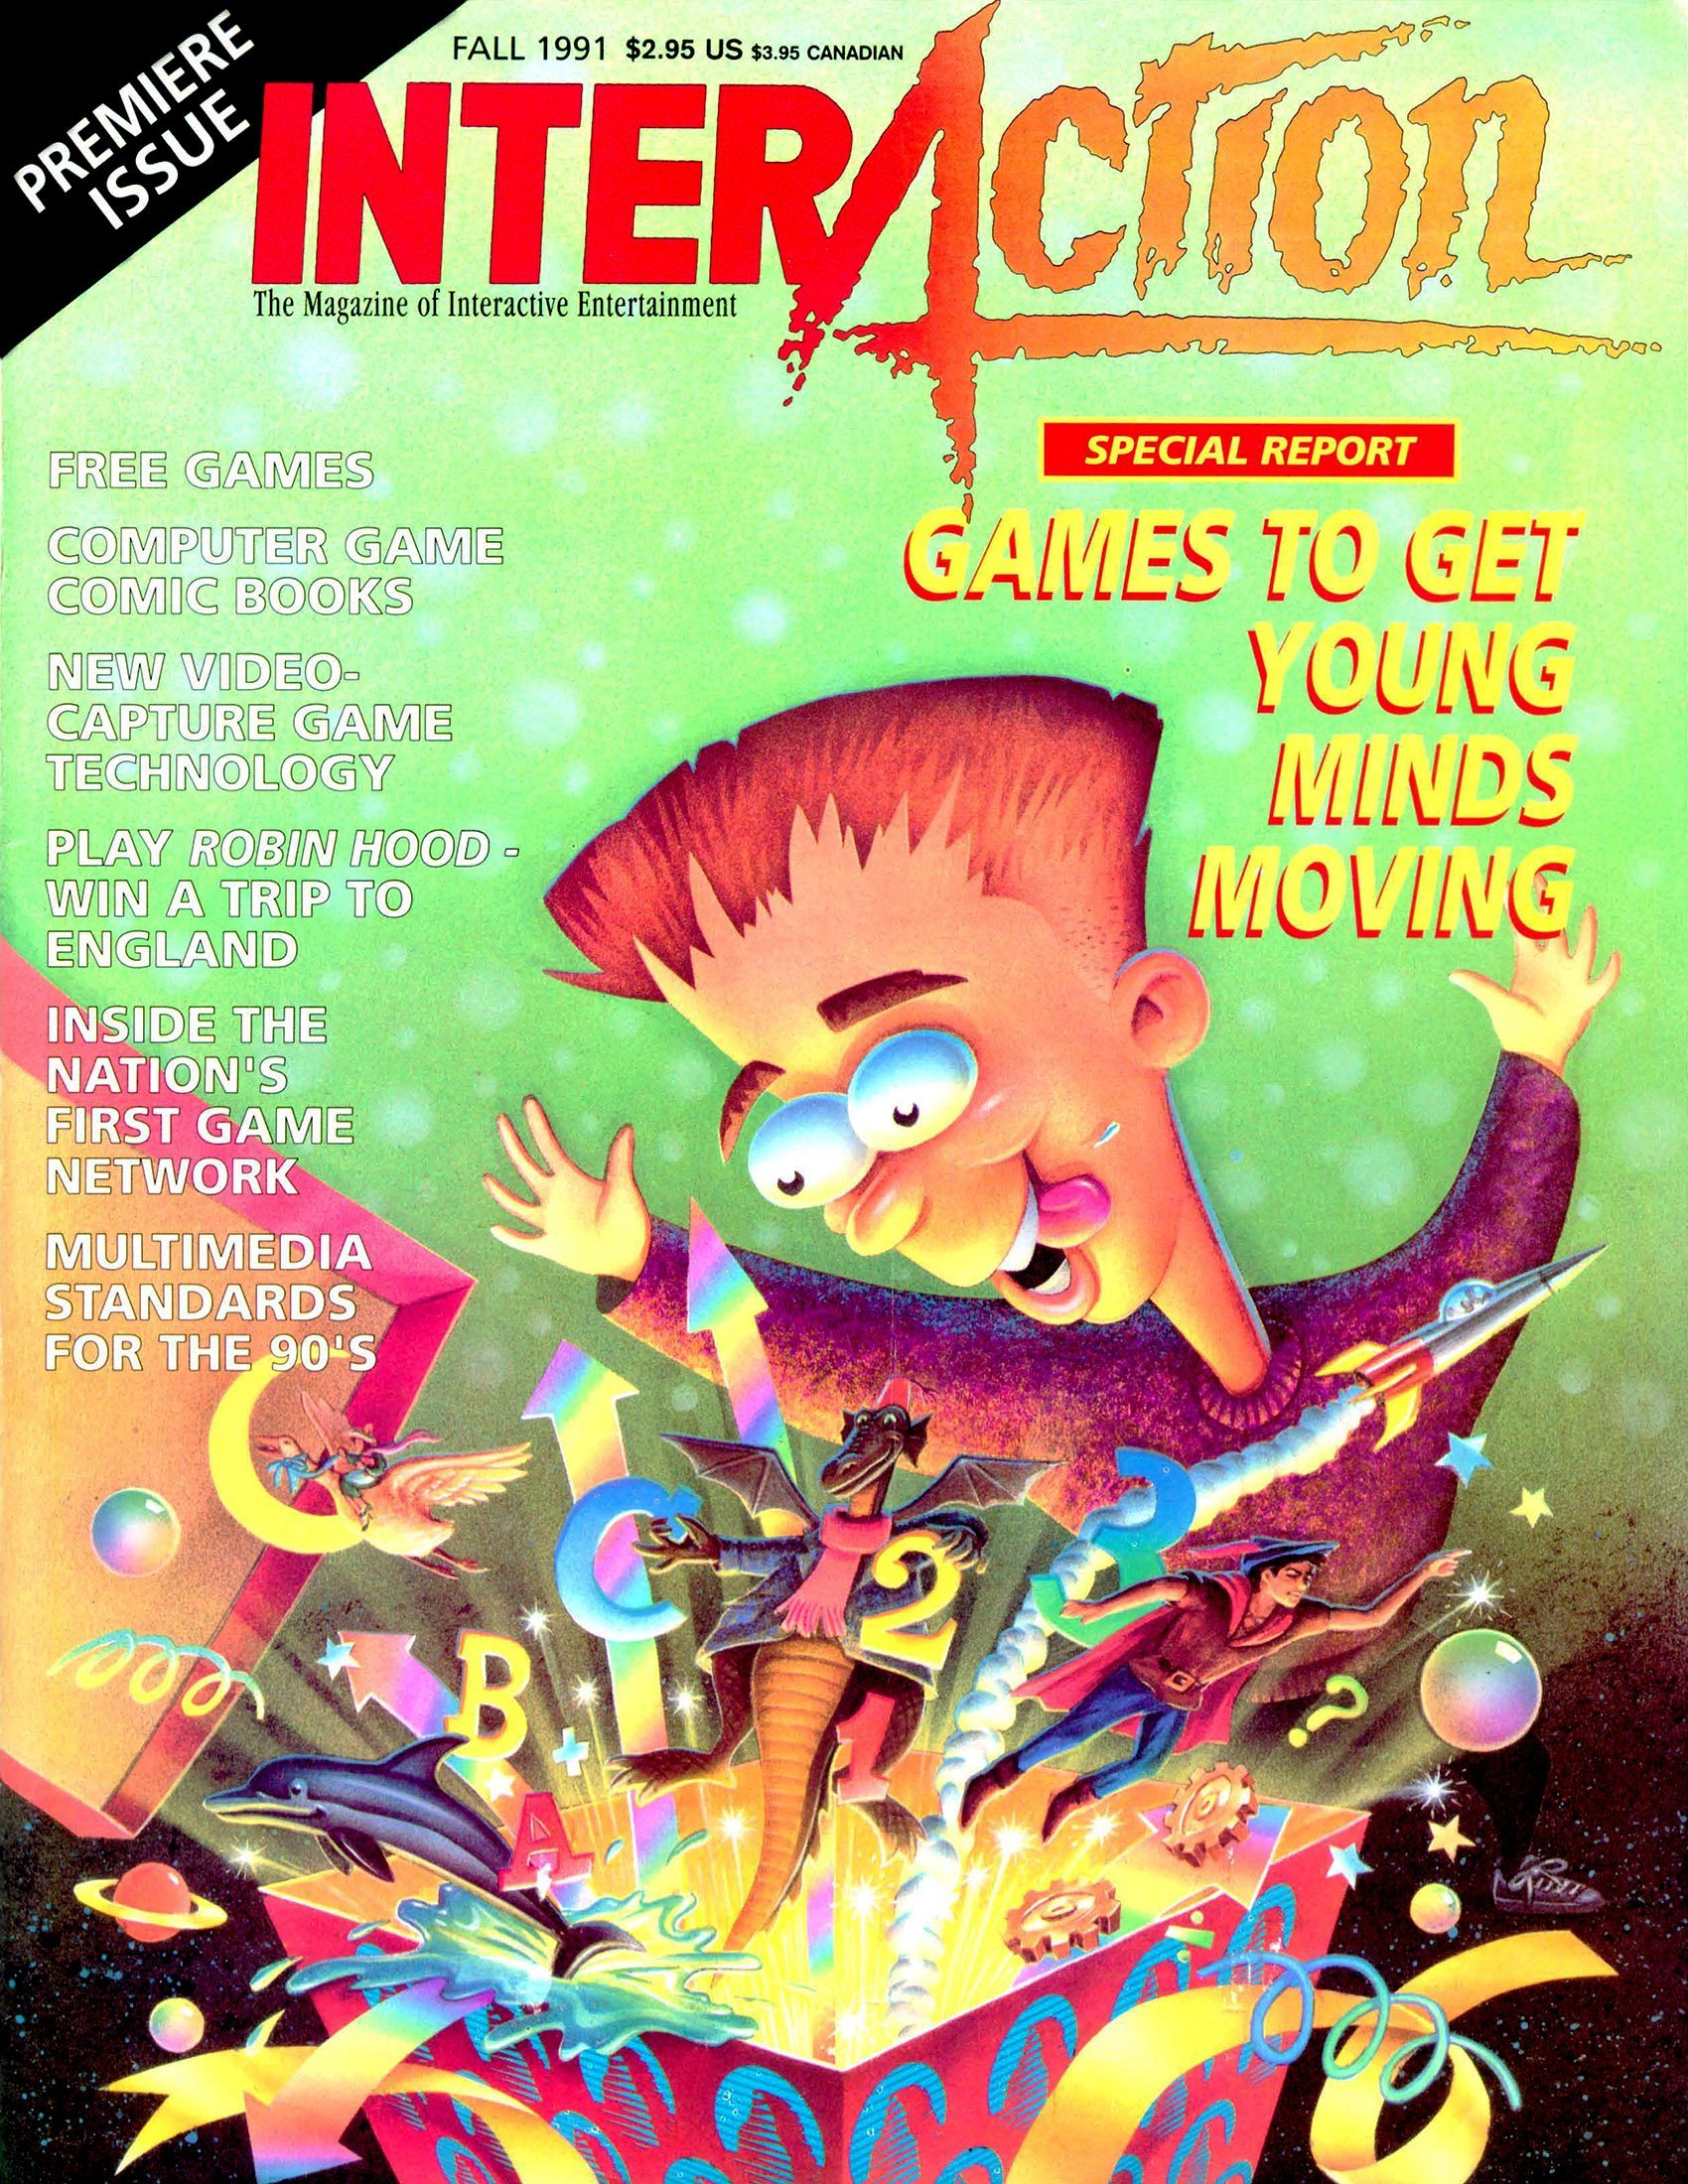 InterAction Issue 12 (Volume 4 Number 3) Fall 1991